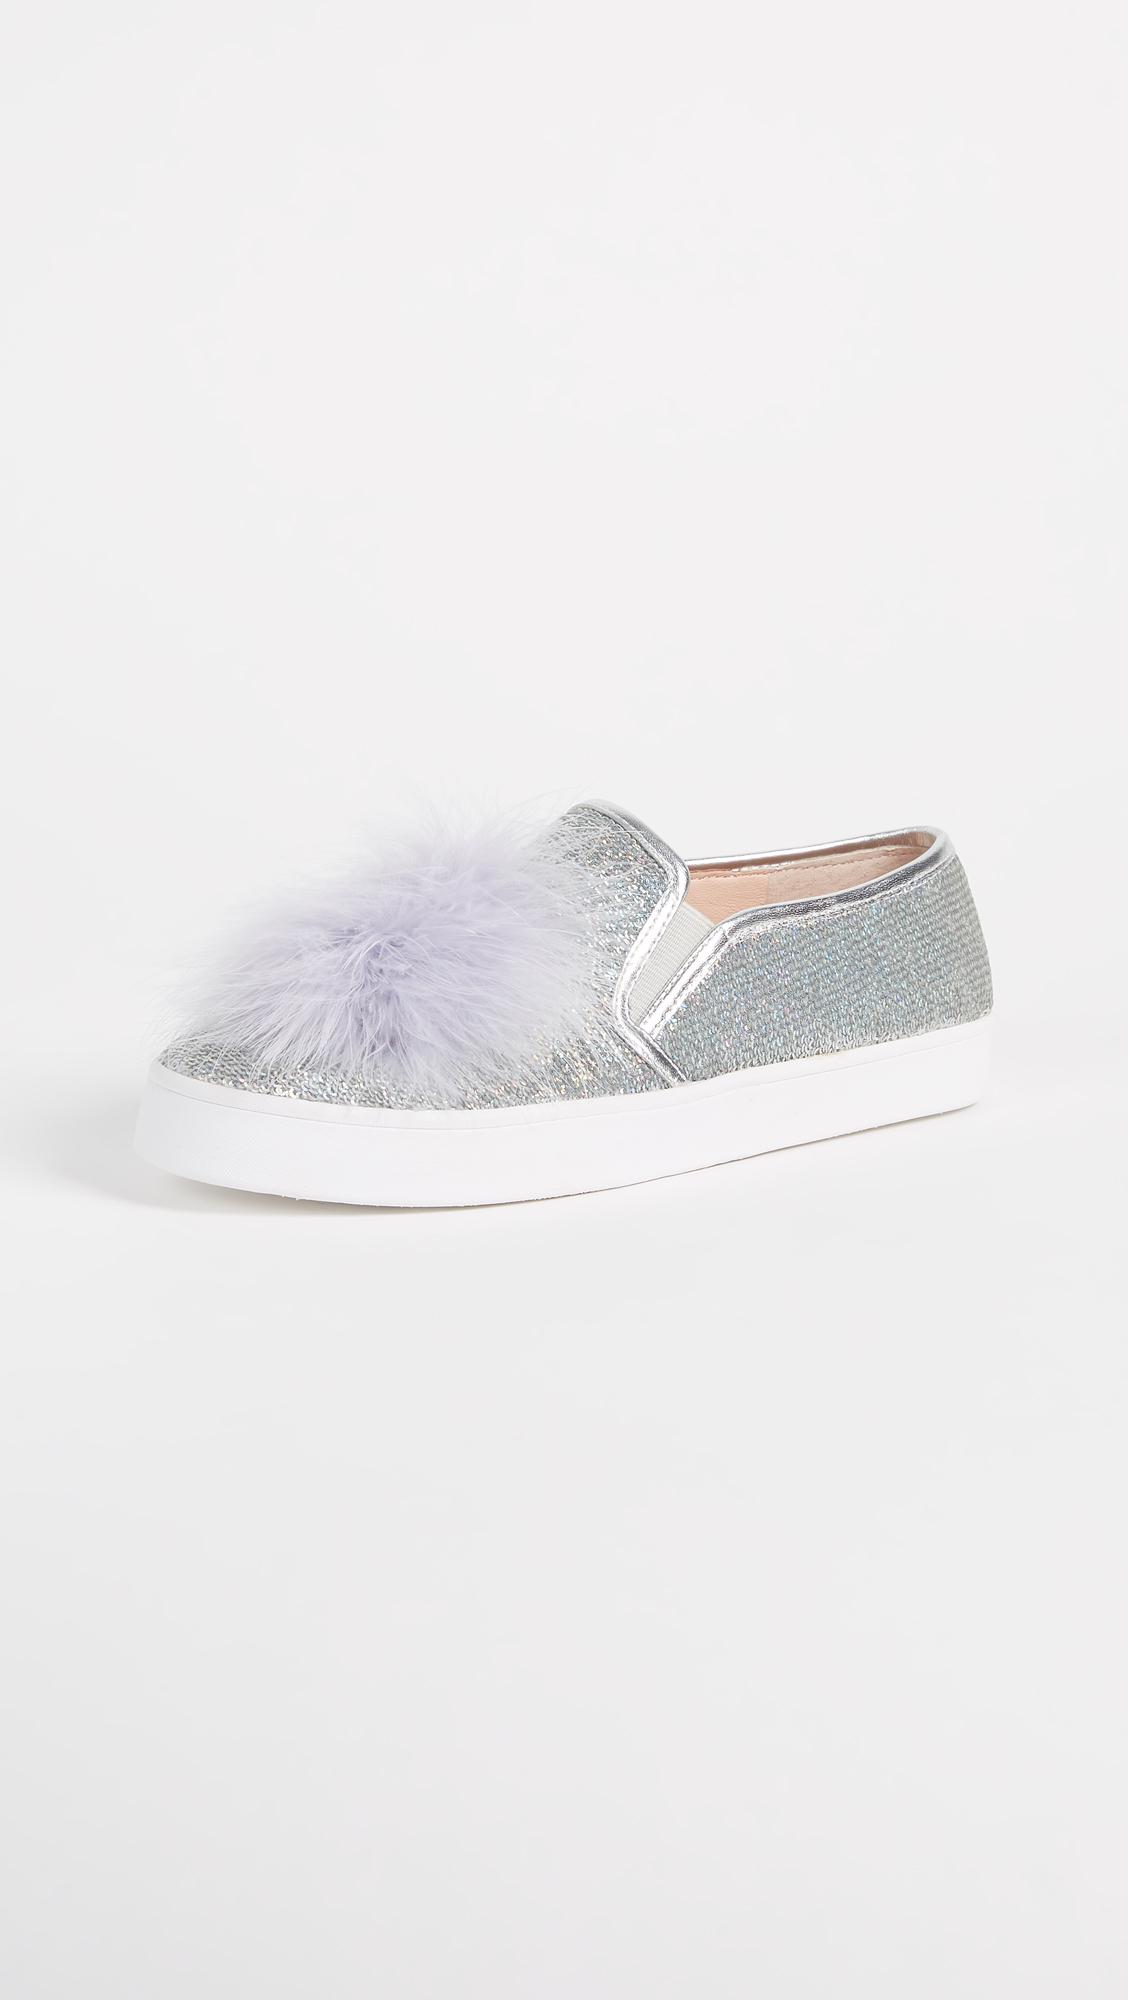 b0a828ec3a02 Gallery. Previously sold at  Shopbop · Women s Pom ...